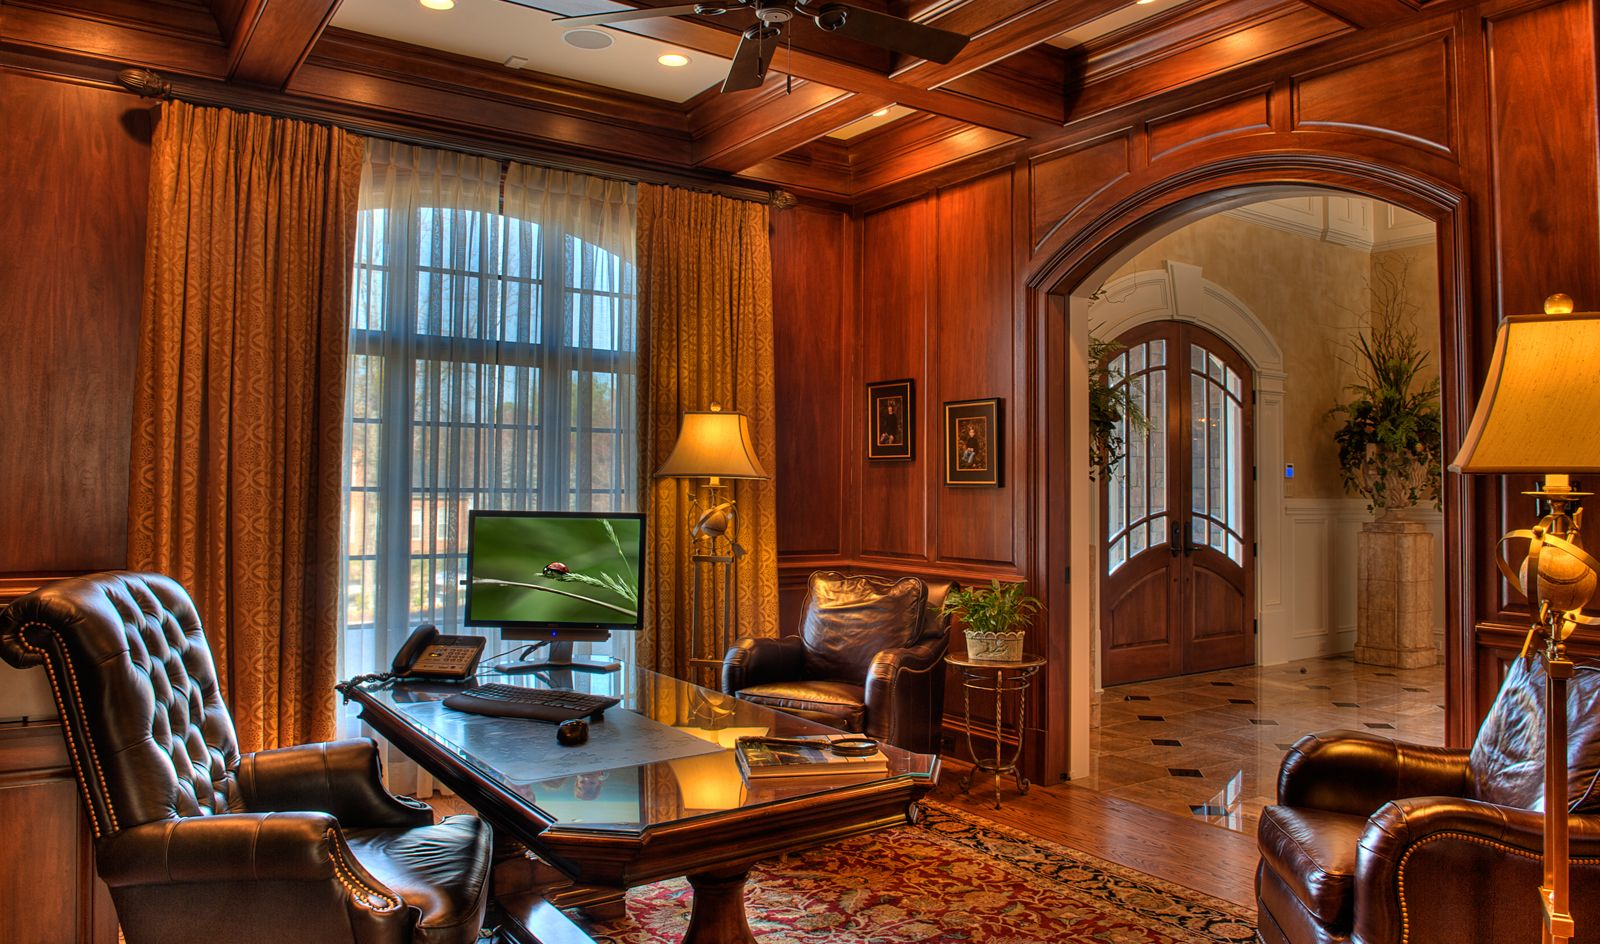 Home interior ceiling design donut really want a study off the front door want it to have the